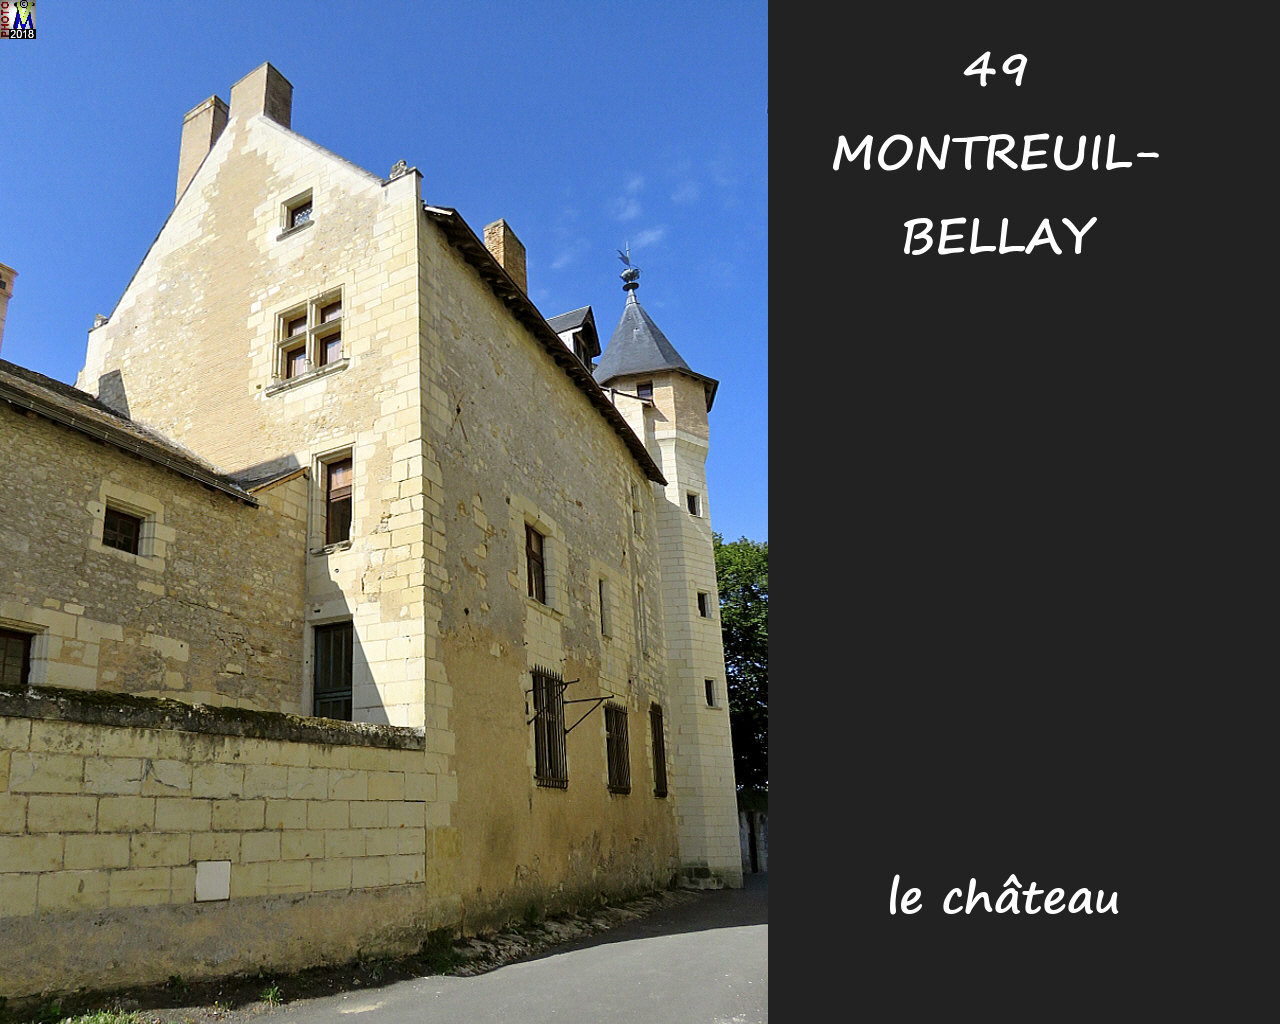 49MONTREUIL-BELLAY_chateau_1032.jpg